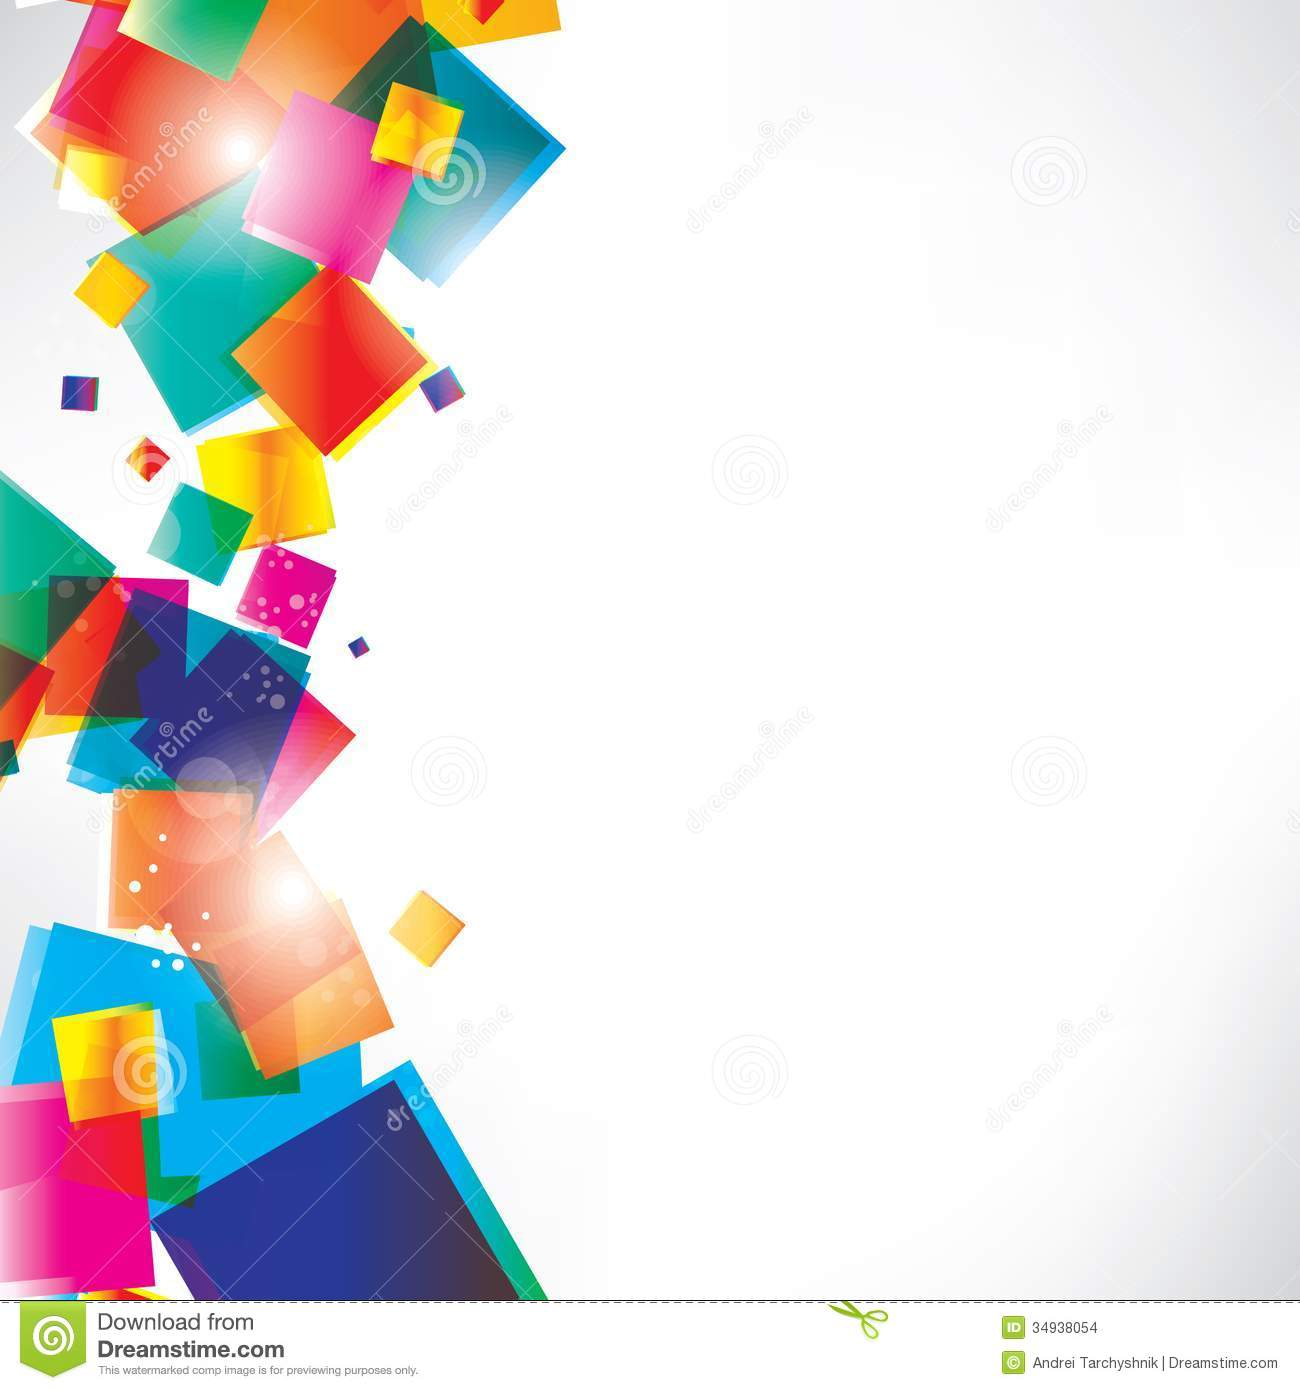 File Decoration Designs: Abstract Background With Geometric Shapes Stock Vector